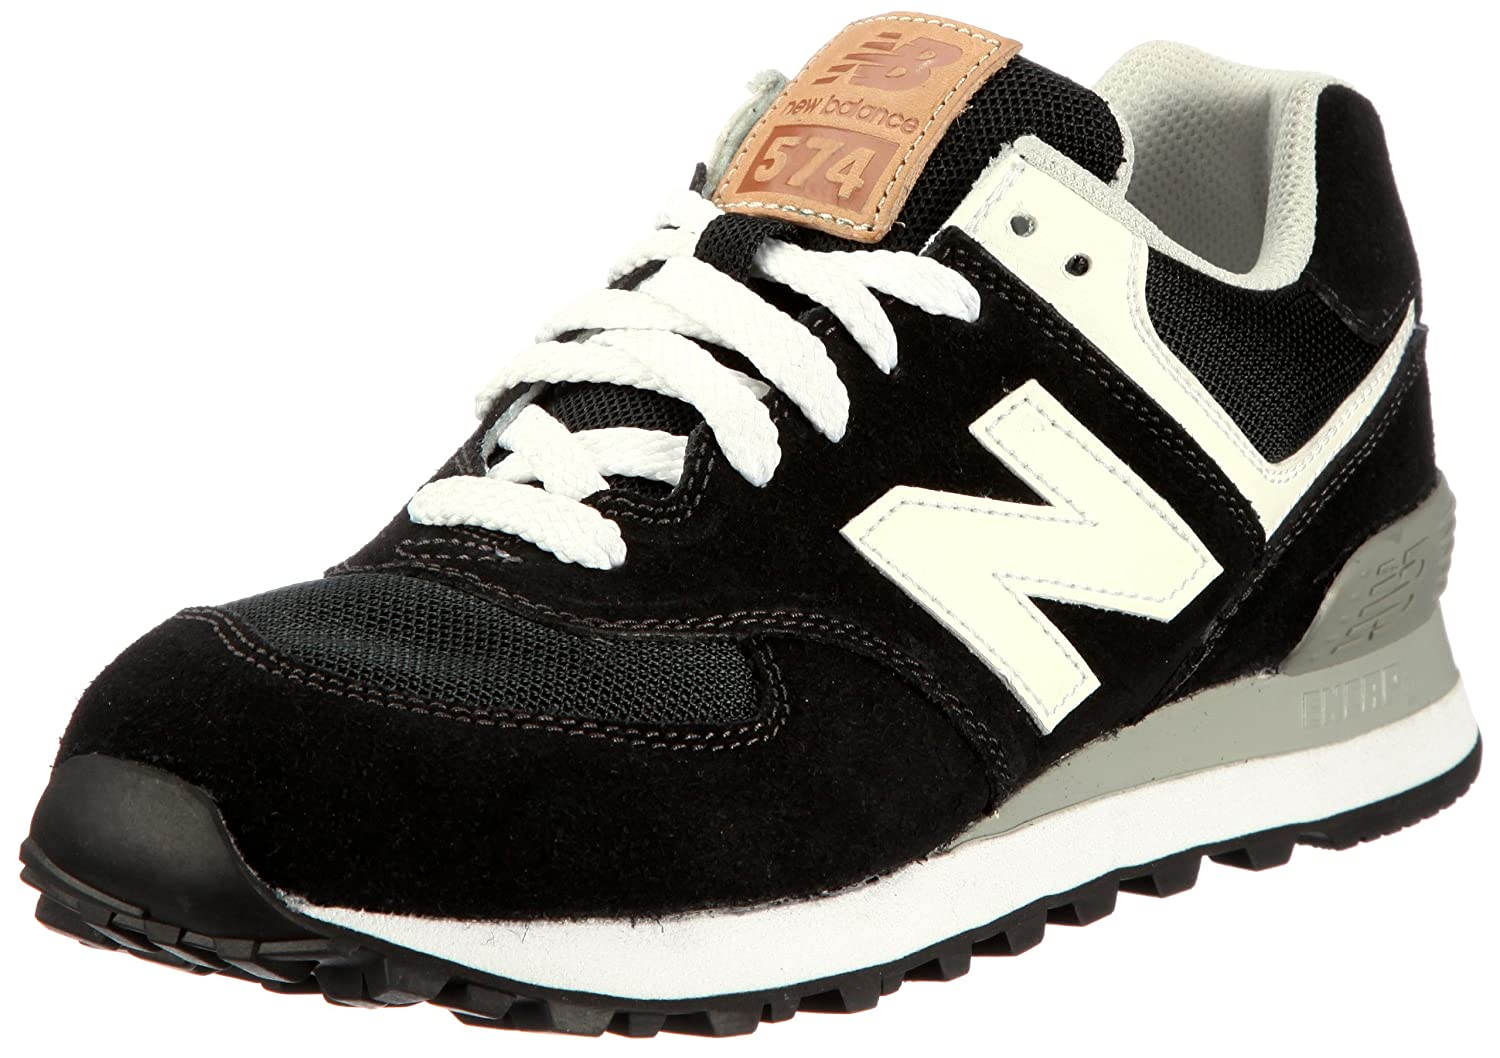 competitive price 11caf 3568a New Balance Unisex - Adults ML574UC Trainers 199041-60-8 ...